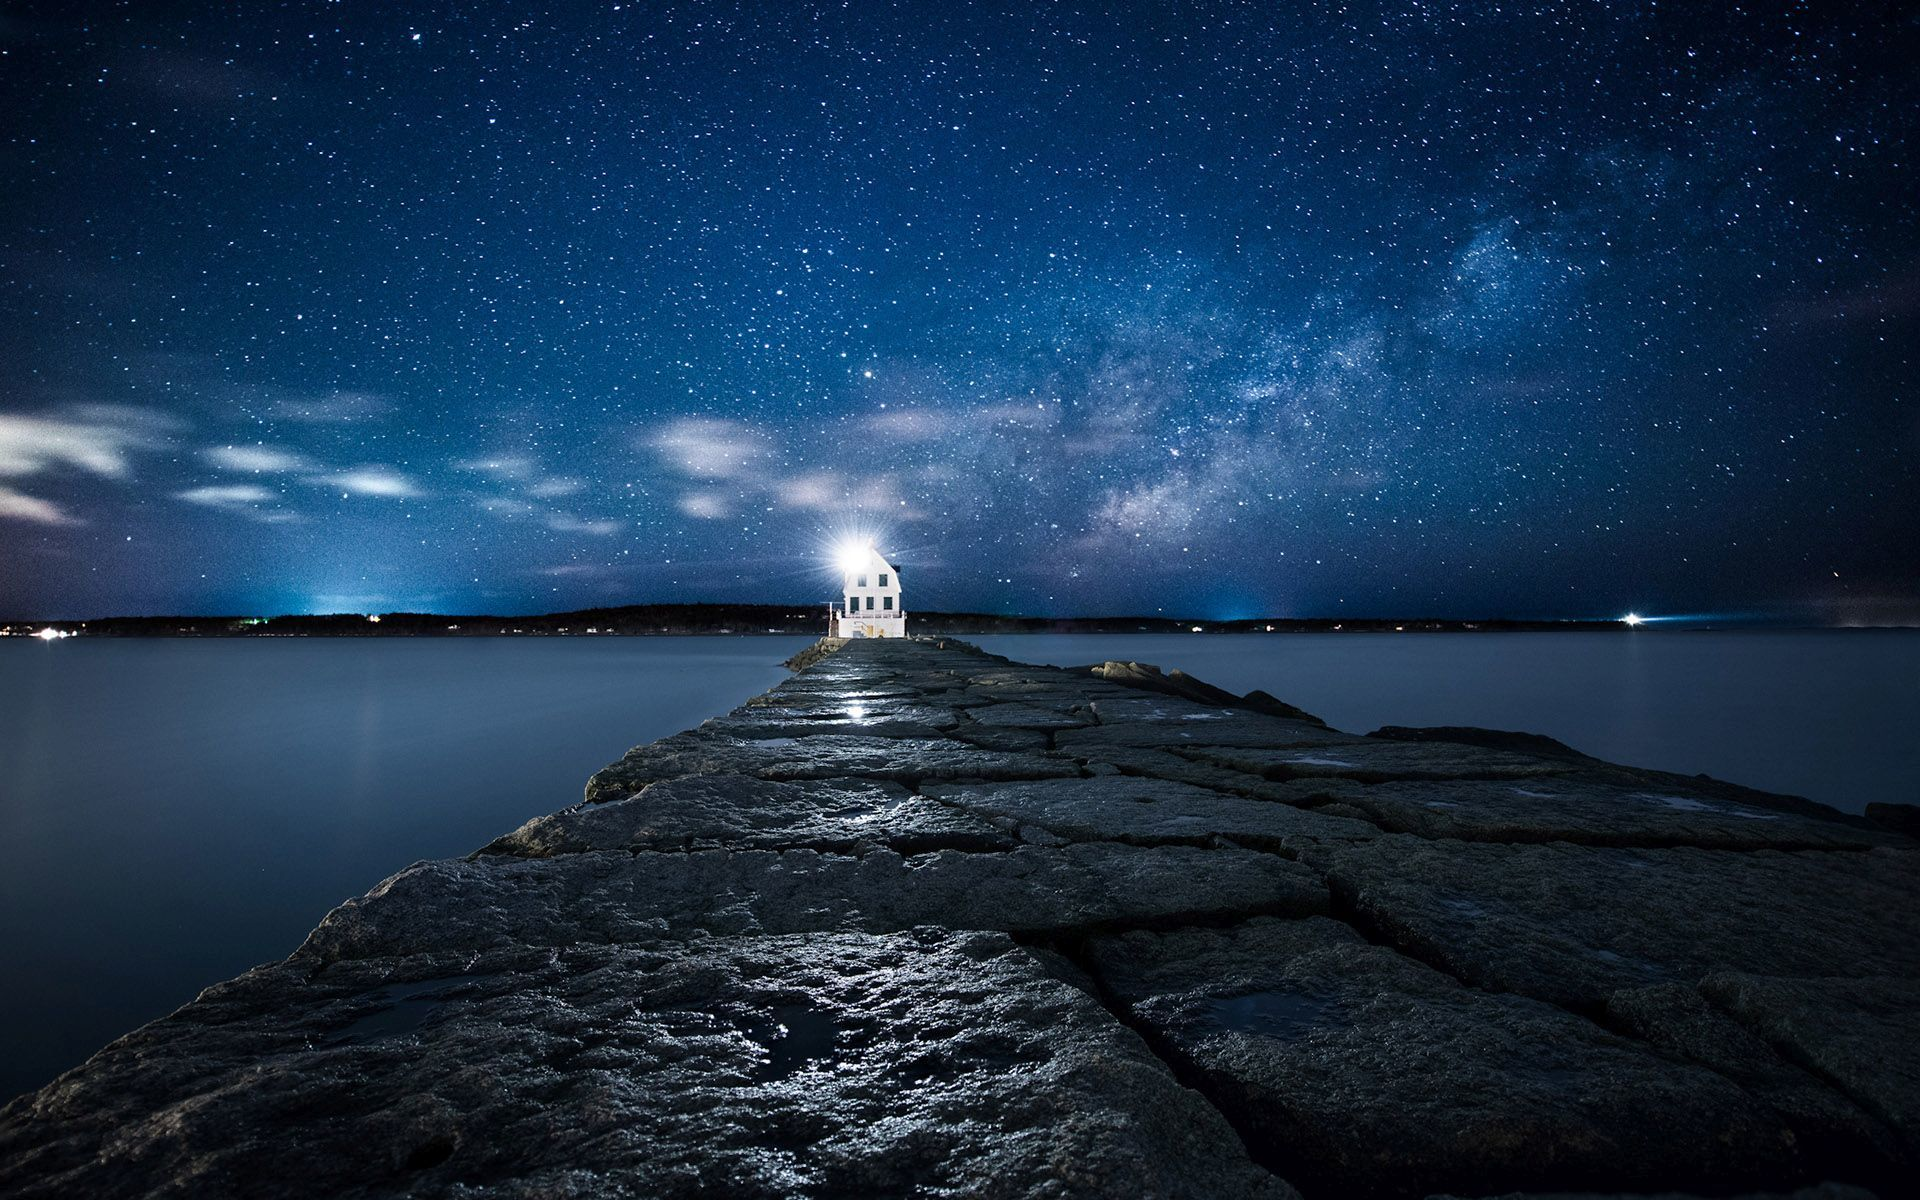 Lighthouse under the starry sky hd wallpaper hd latest for The latest wallpaper